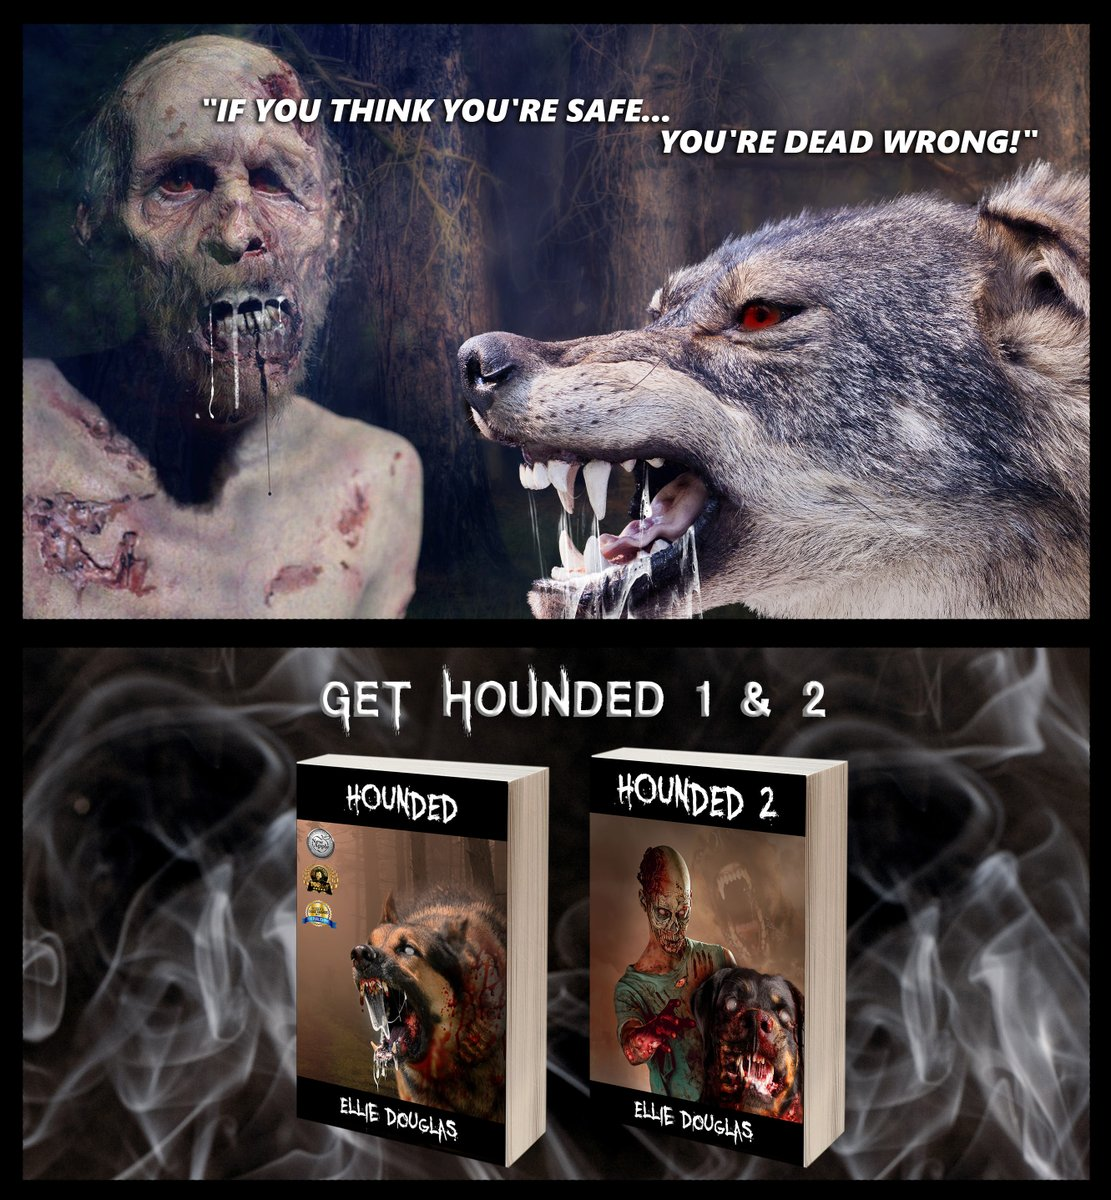 #Hounded and #Hounded2 🧟♀️  Get it here:    and here:   Be afraid...Be very afraid. 📚  #NonprofitHorror #IARTG #findhorror #promotehorror #HorrorStories